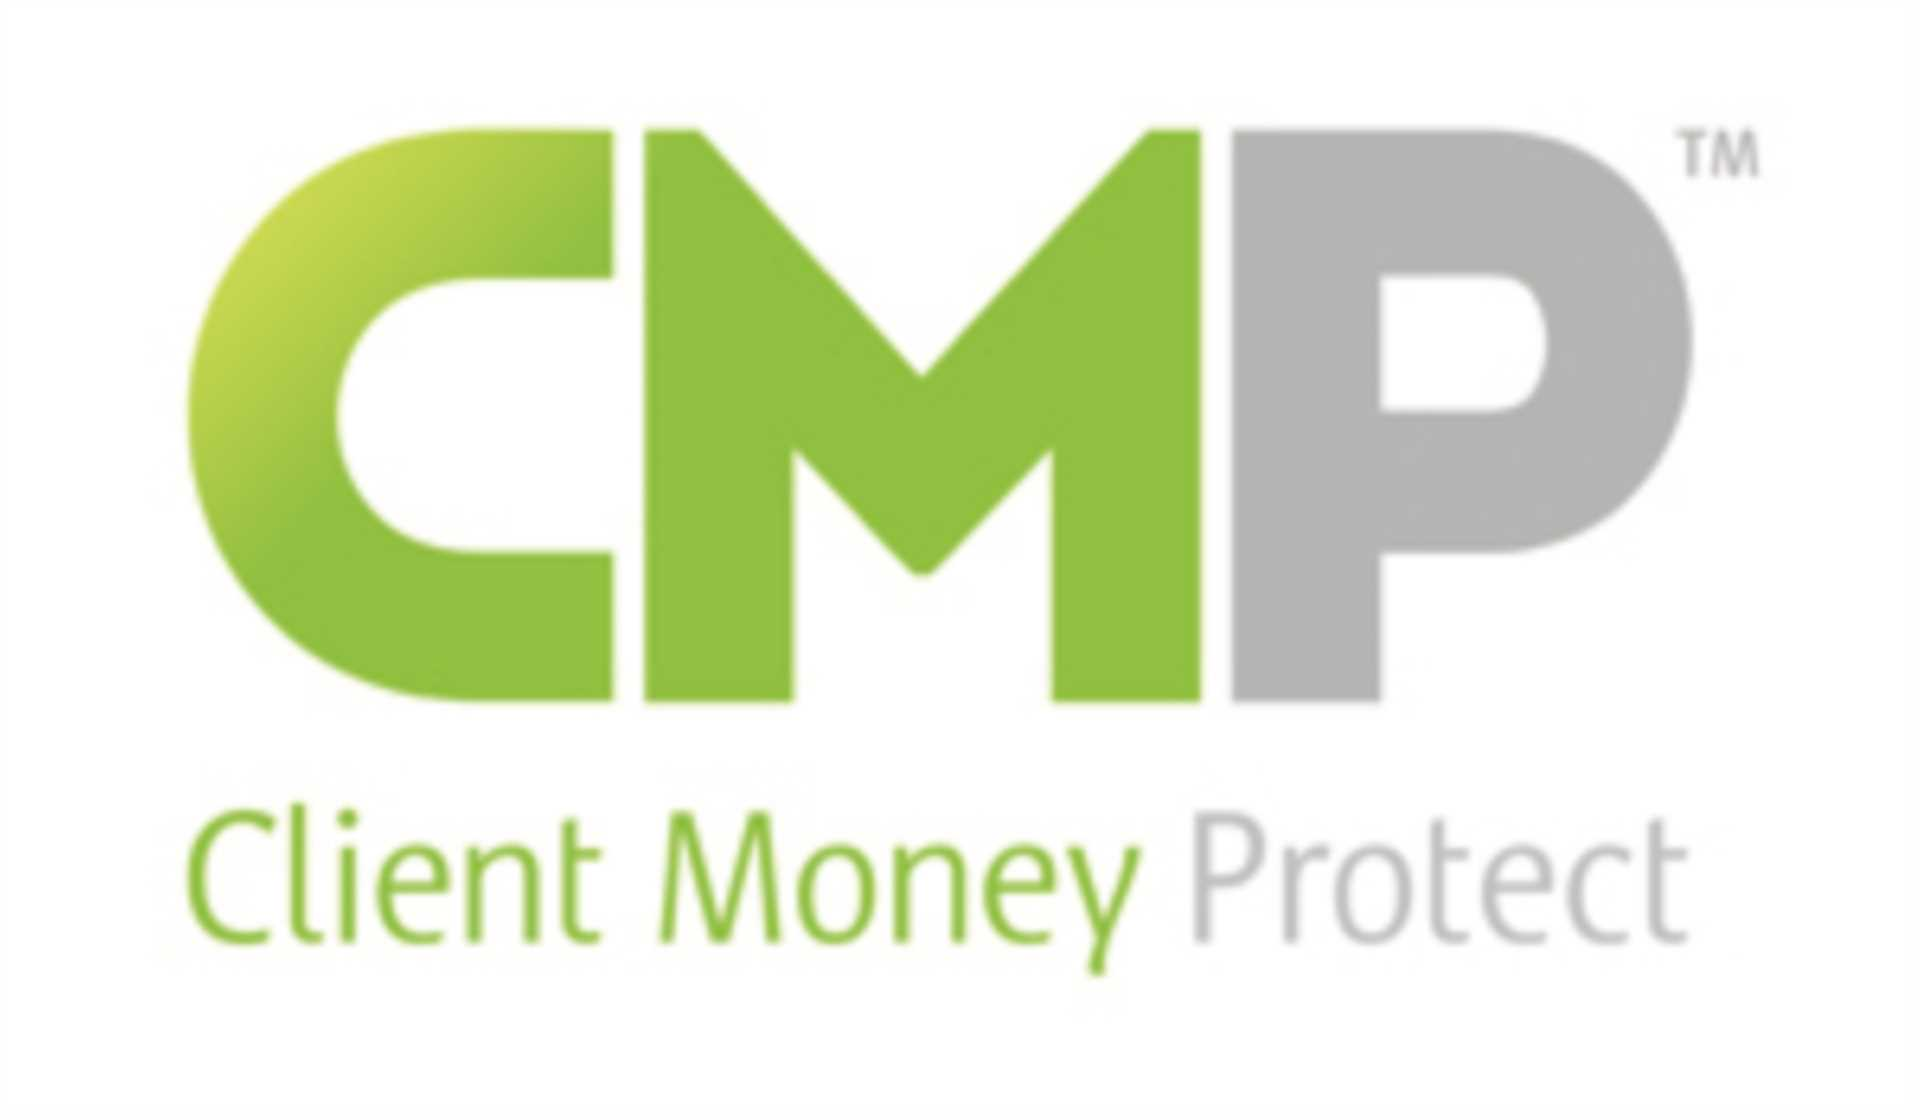 Distinct estate agents news client money protection compulsory or make it easier for yourself call us at distinct estate agents on 01295 234 750 we are arla propertymark licenced agent with cmp and with 5 customer solutioingenieria Choice Image